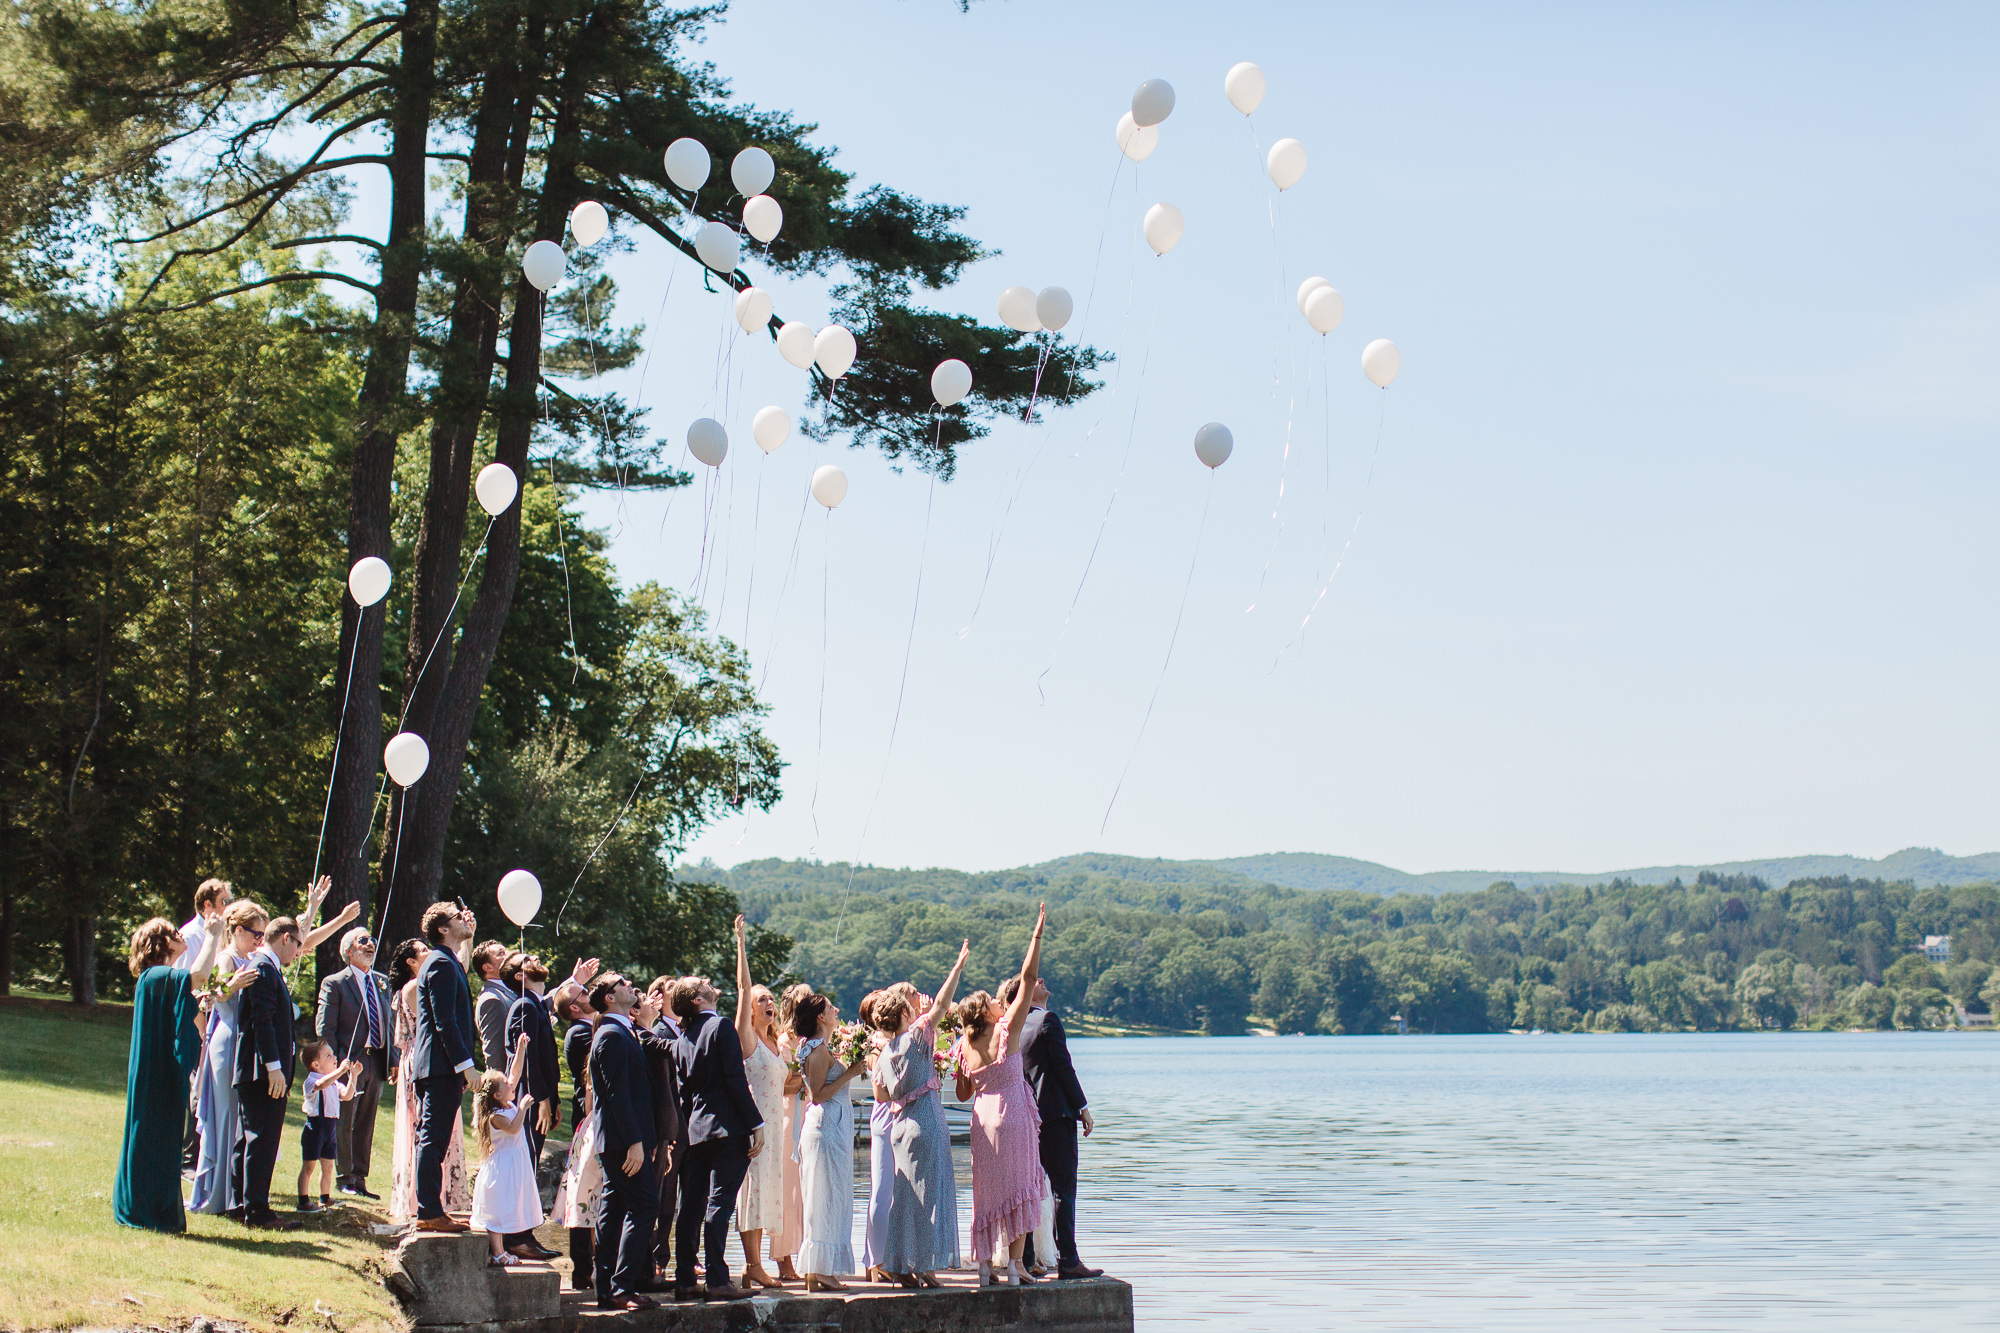 connecticut-summer-lake-wedding-emily-kirke-photography-upstyle (68 of 181).jpg